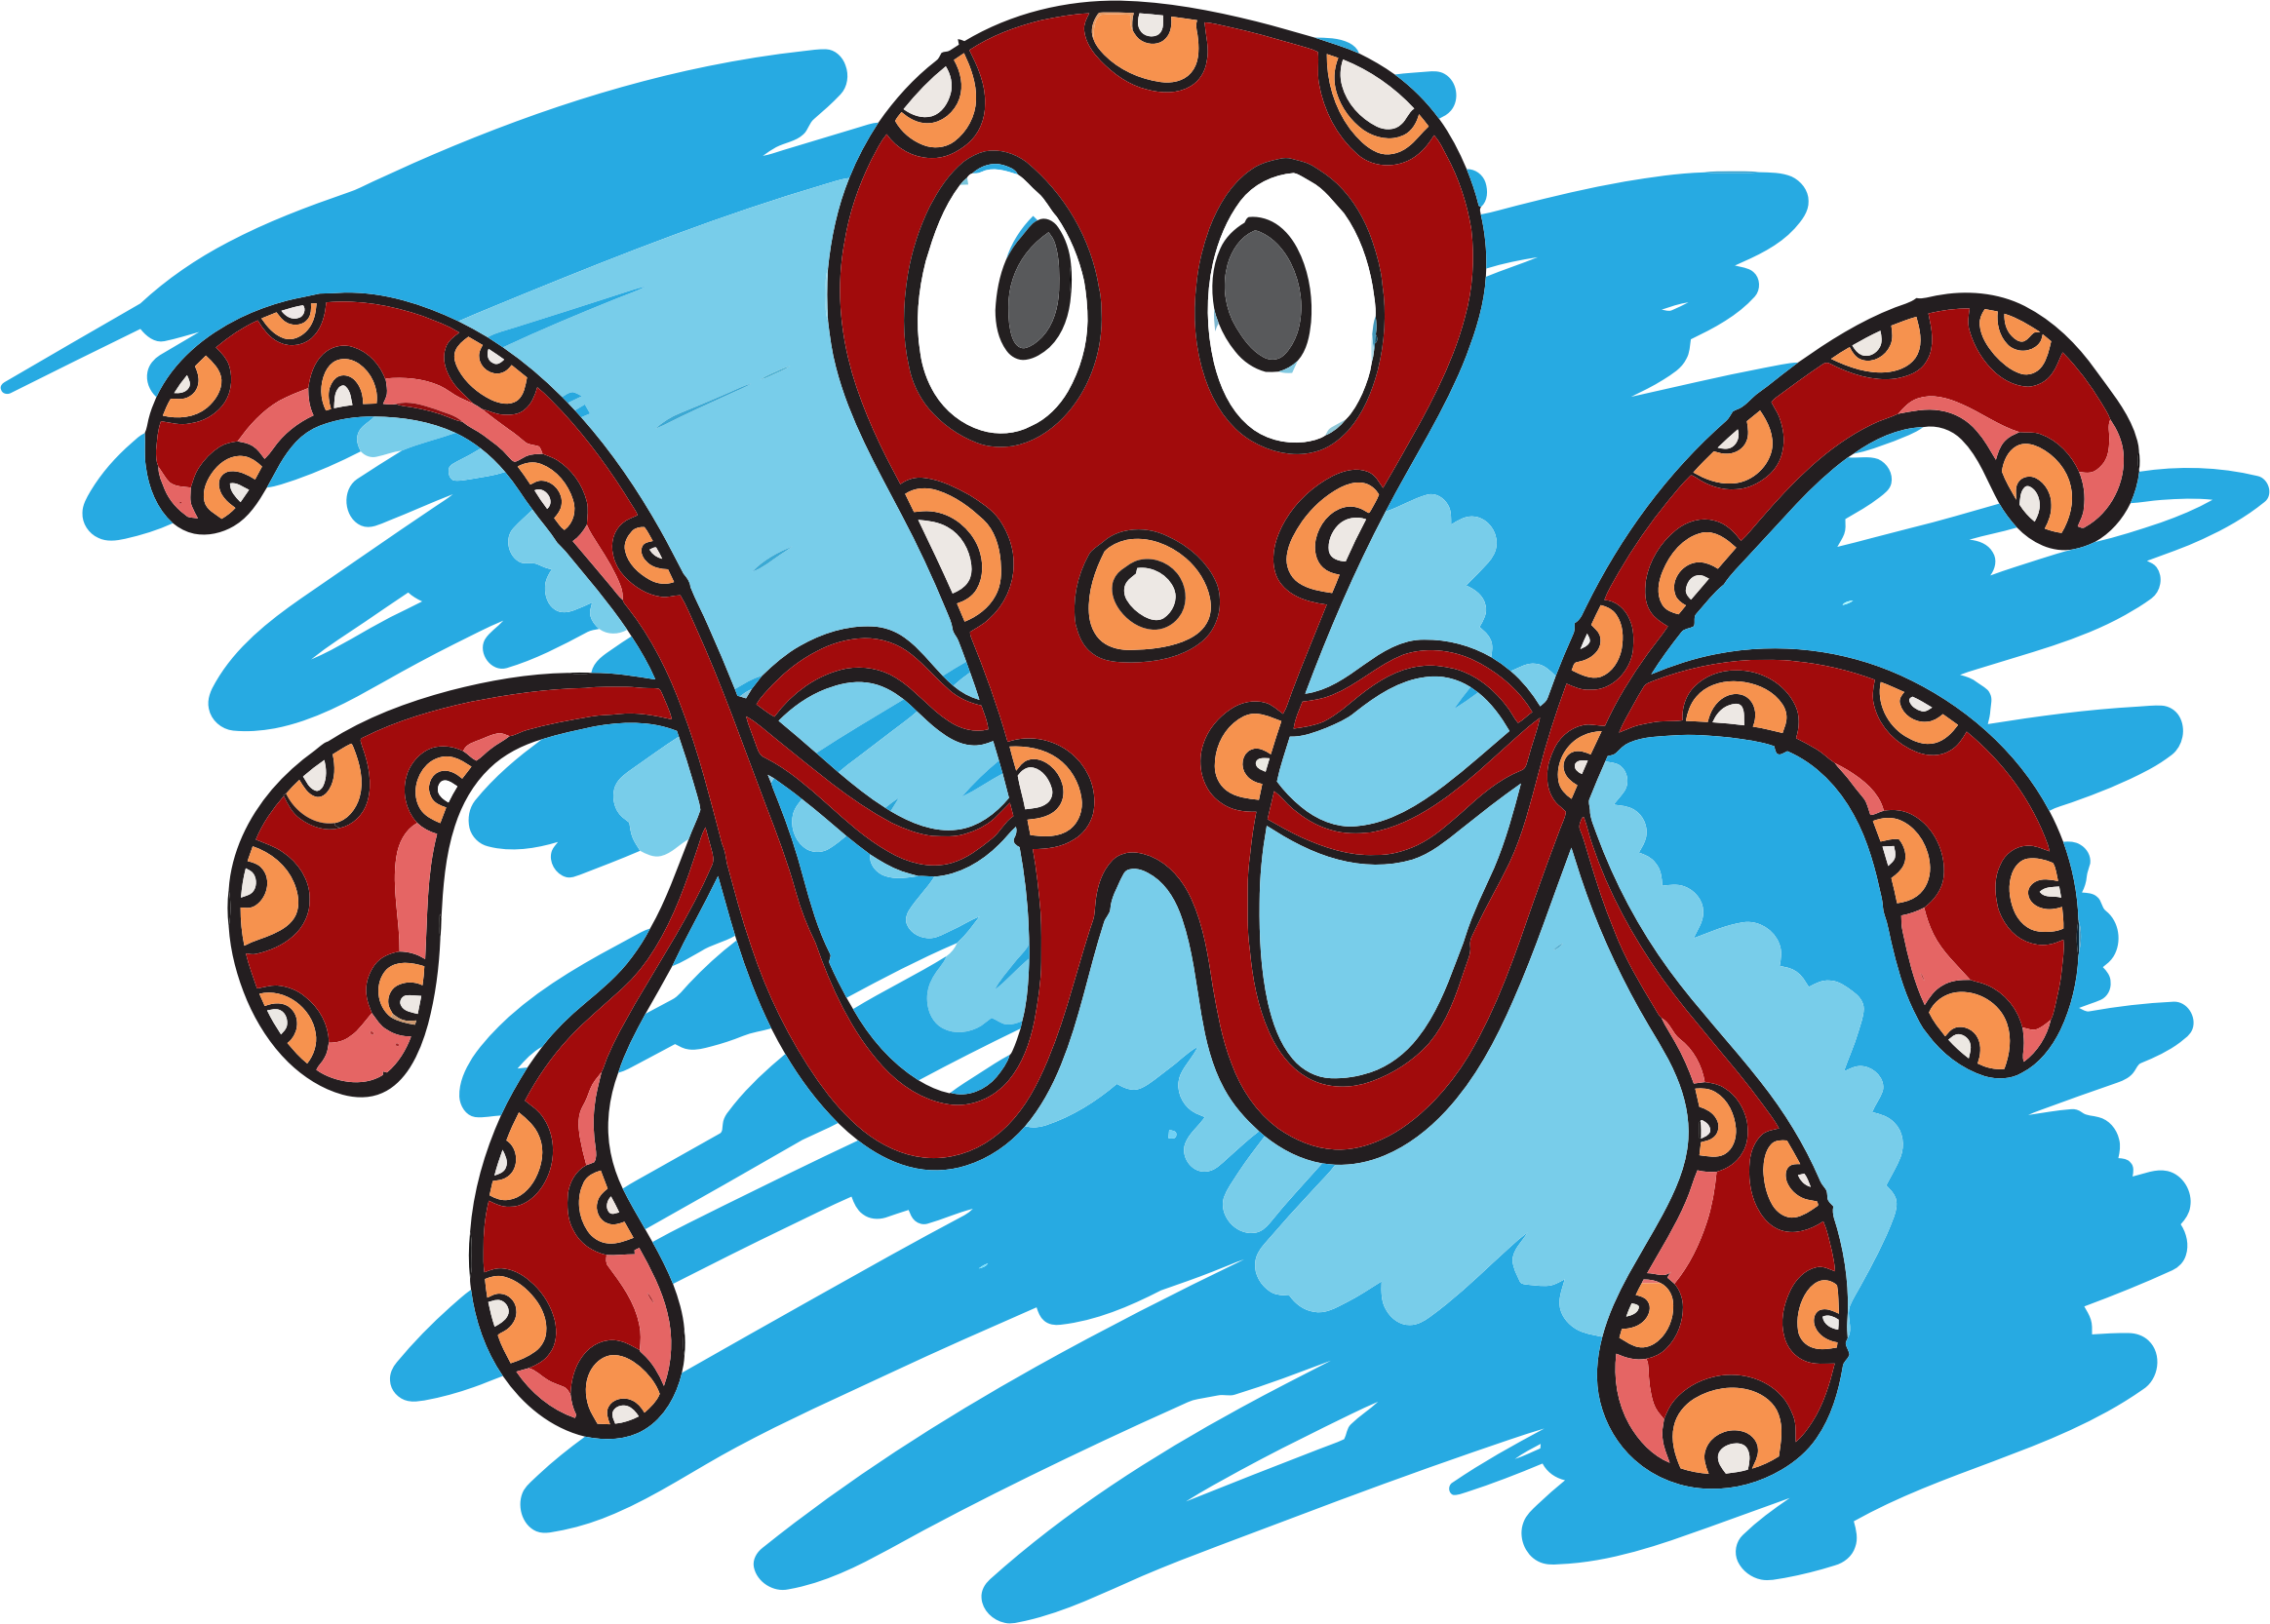 Octopus Drawing by GDJ